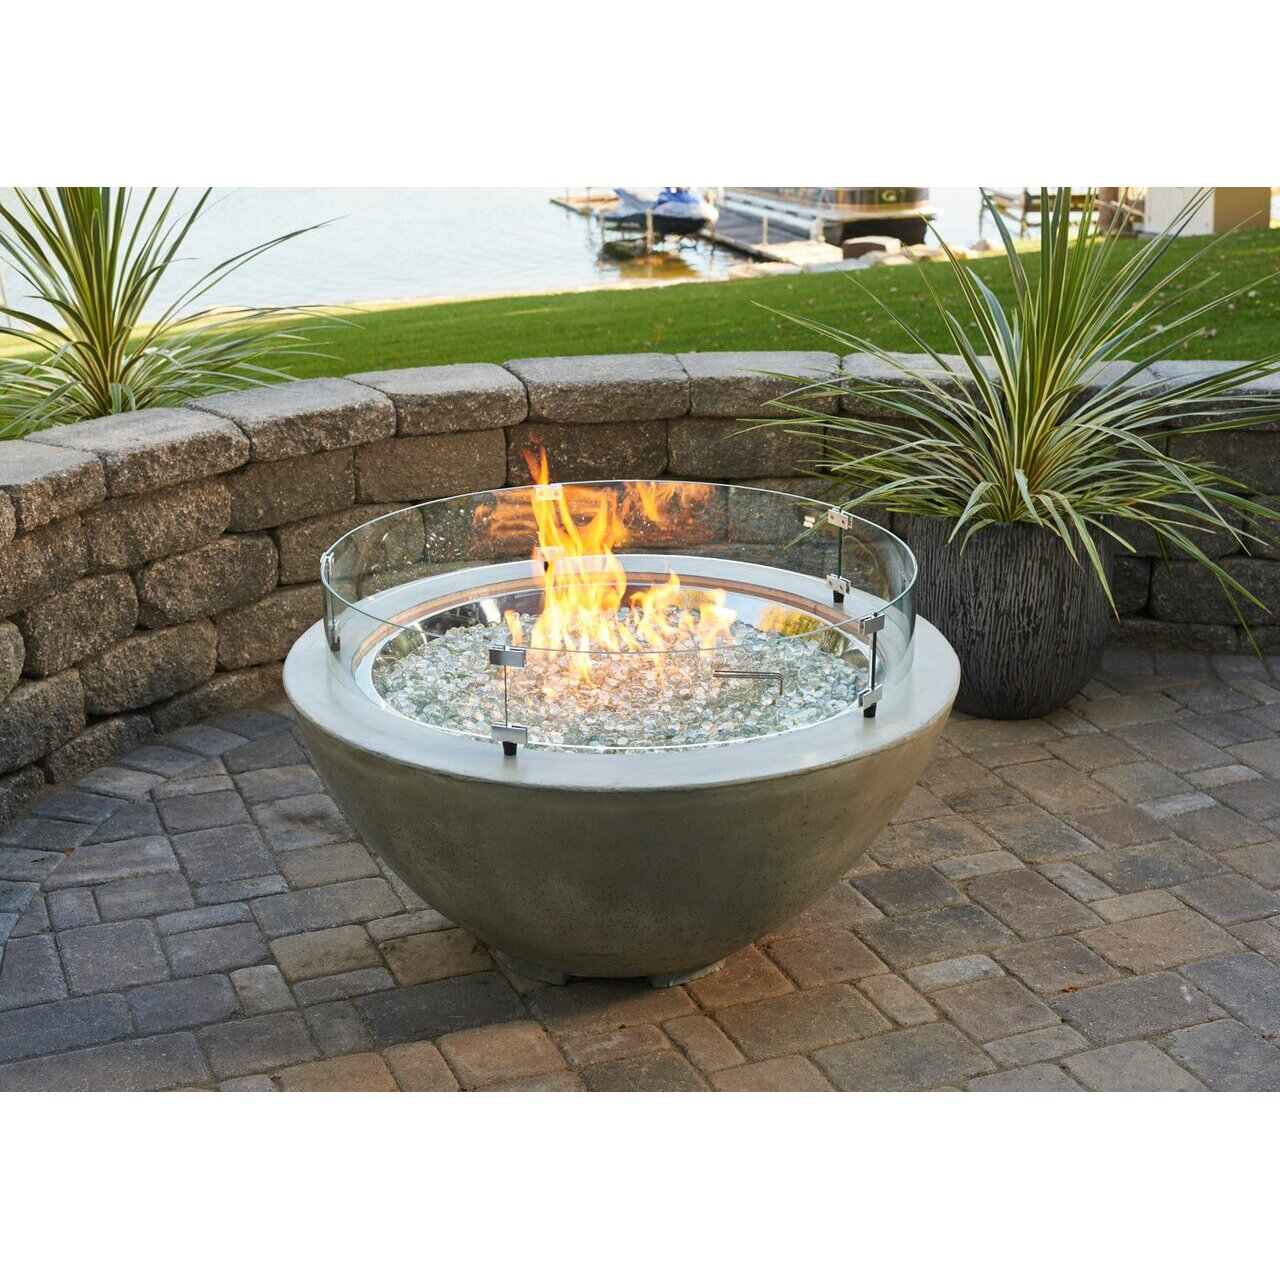 The outdoor greatroom company cove propane fire pit table for Table exterieur 120x60